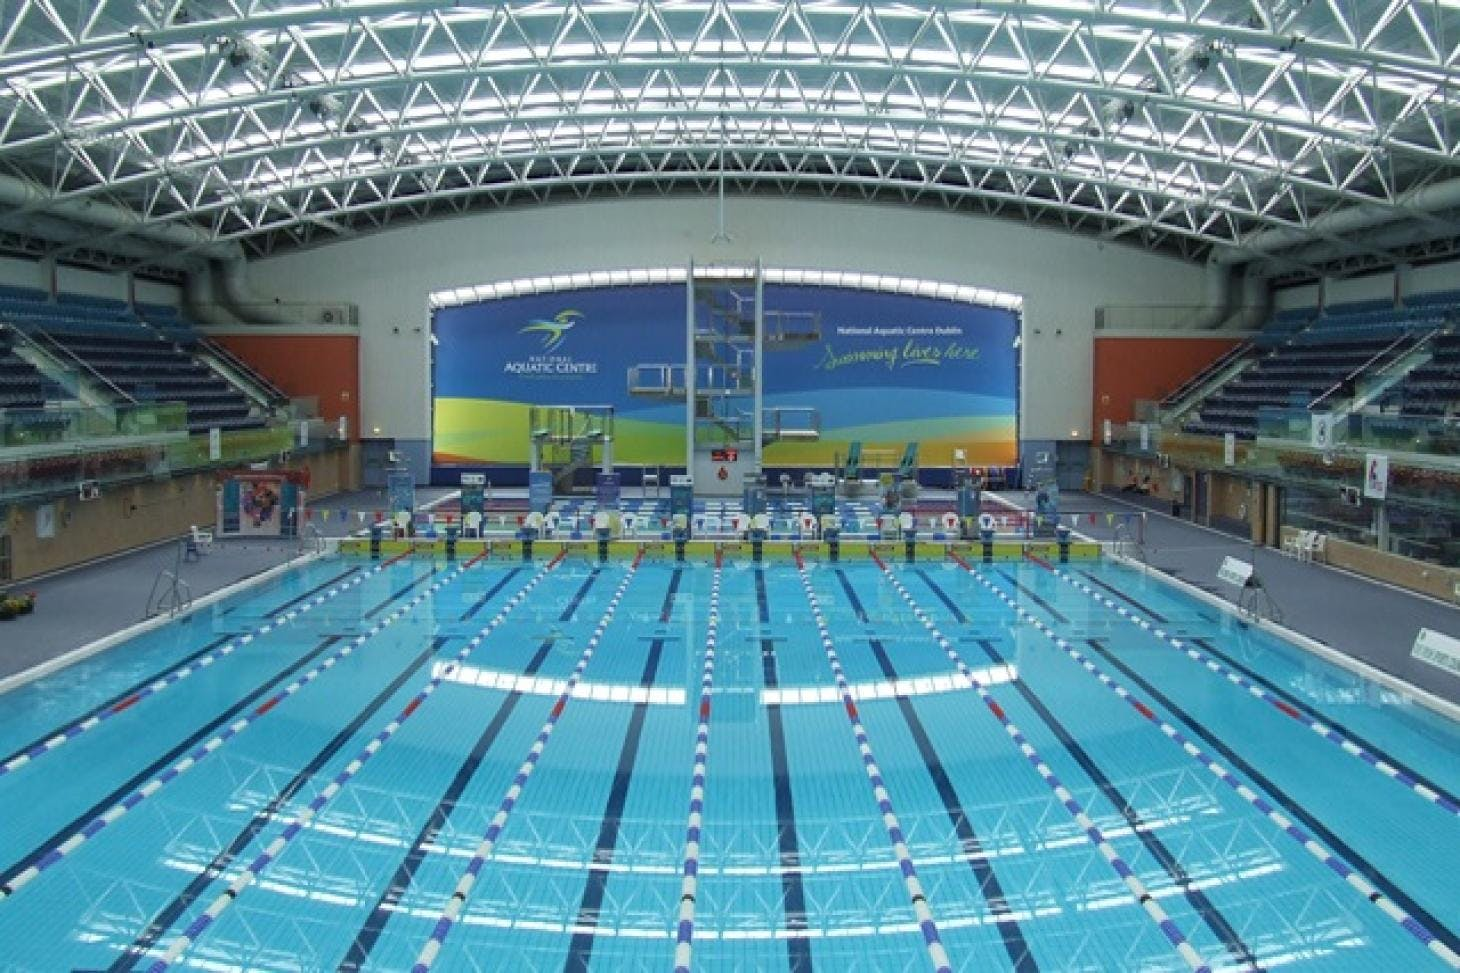 National Sports Campus Indoor swimming pool